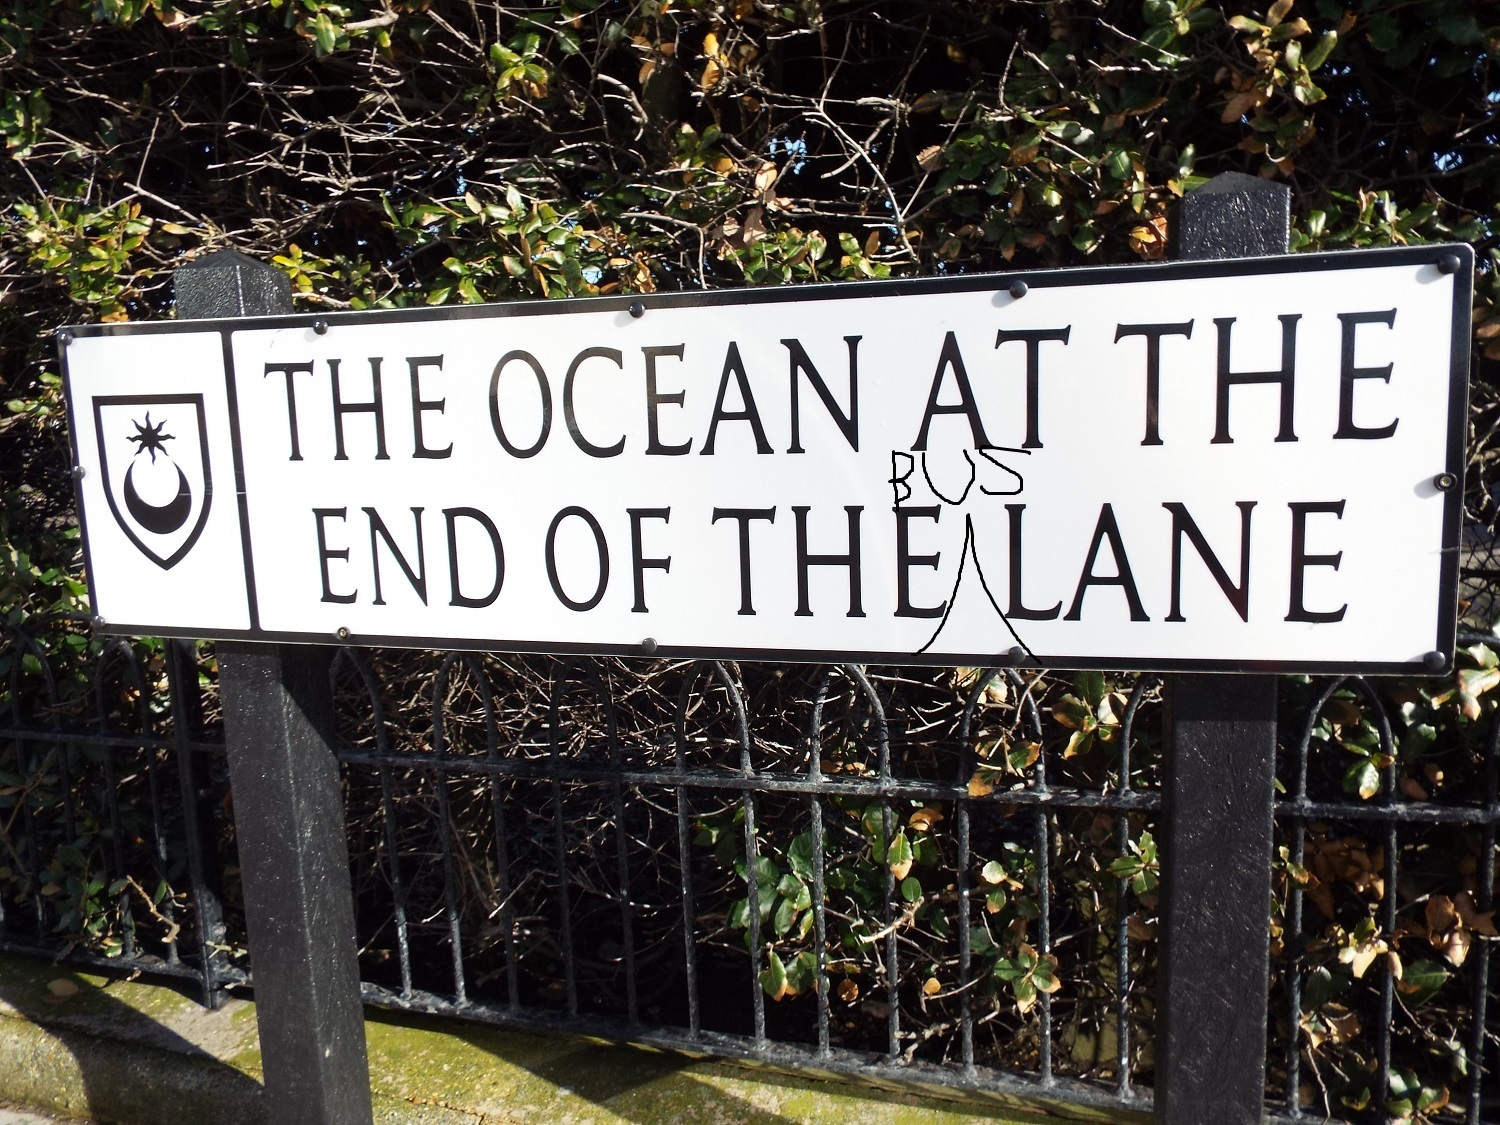 The Ocean At The End Of The Lane, named for Neil Gaiman in 2013